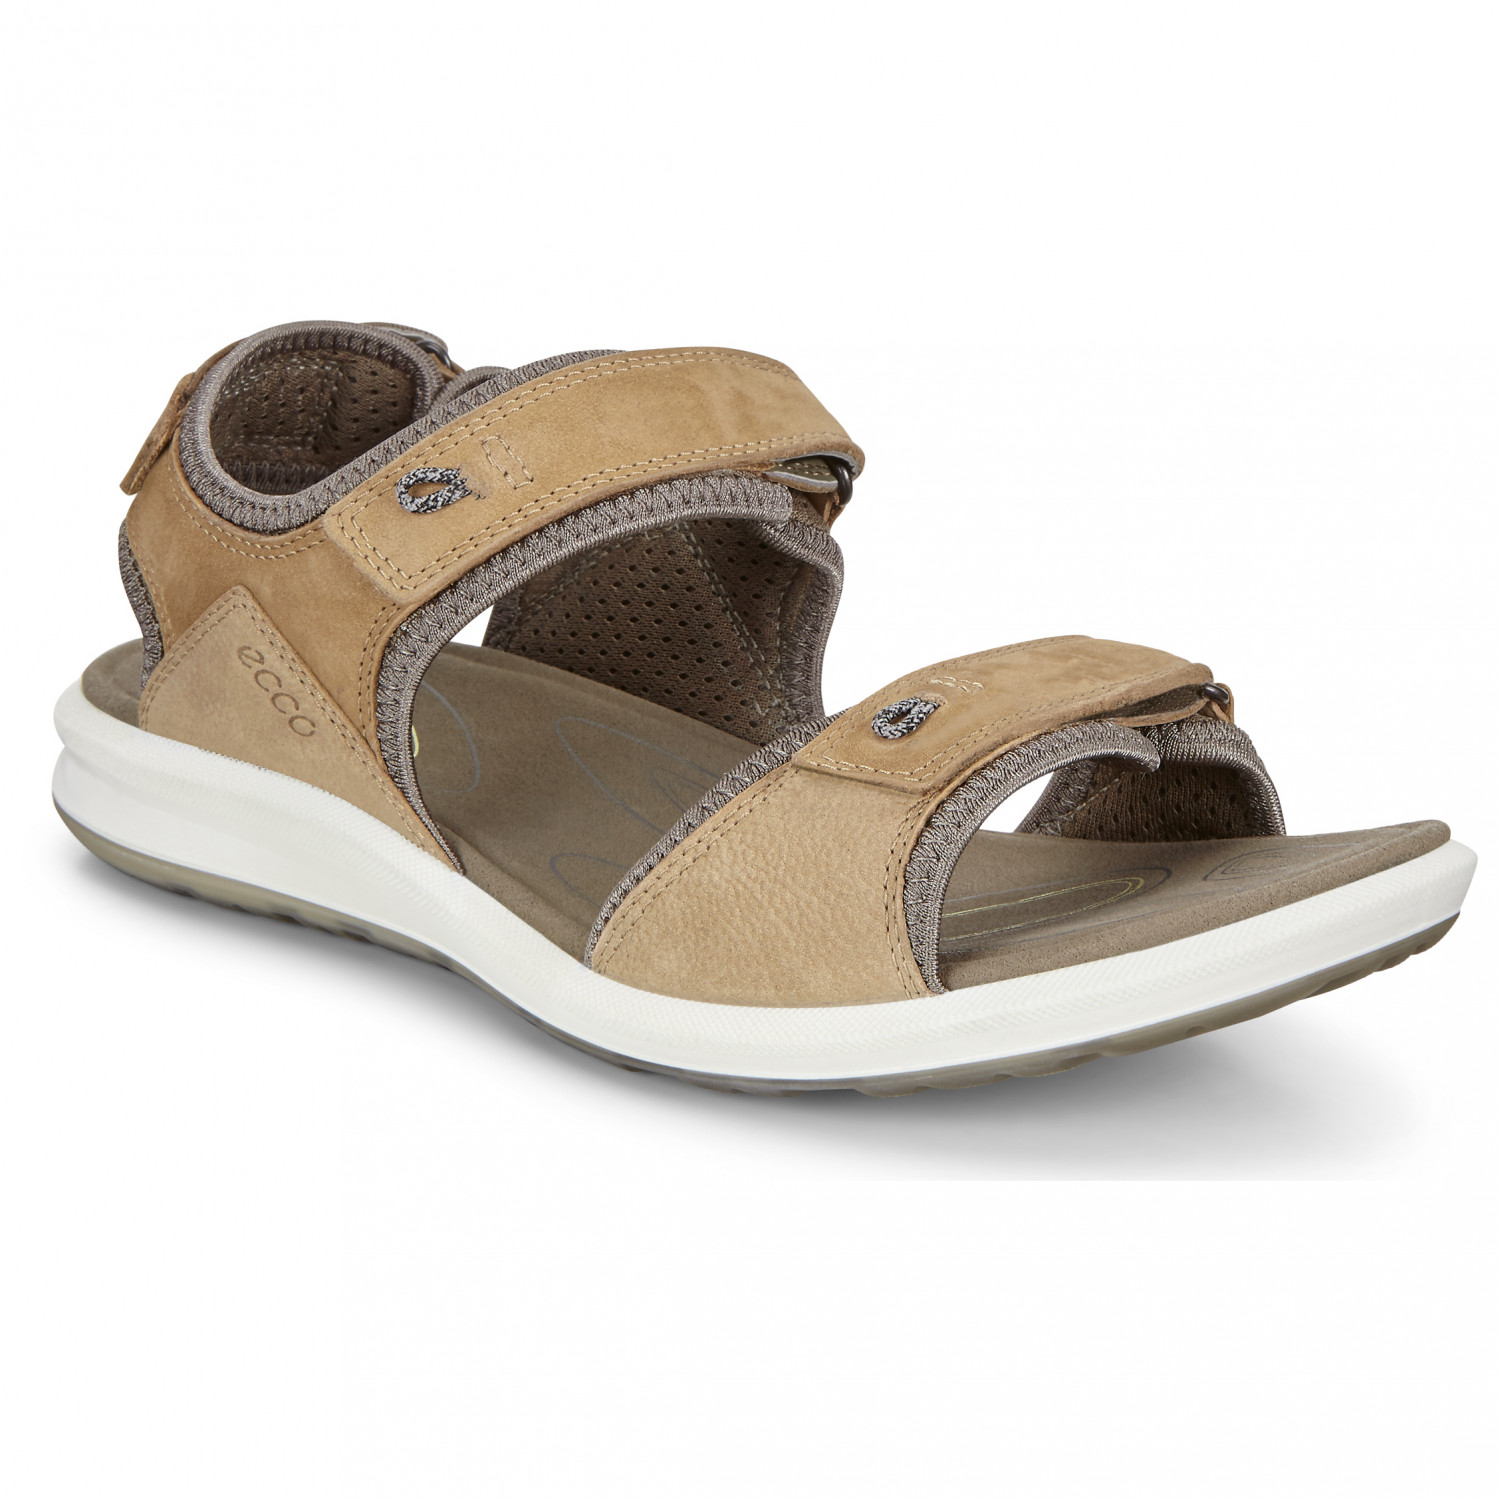 best service f9df2 fb421 Ecco - Women's Cruise II Half Open - Sandals - Navajo Brown / Black | 36  (EU)